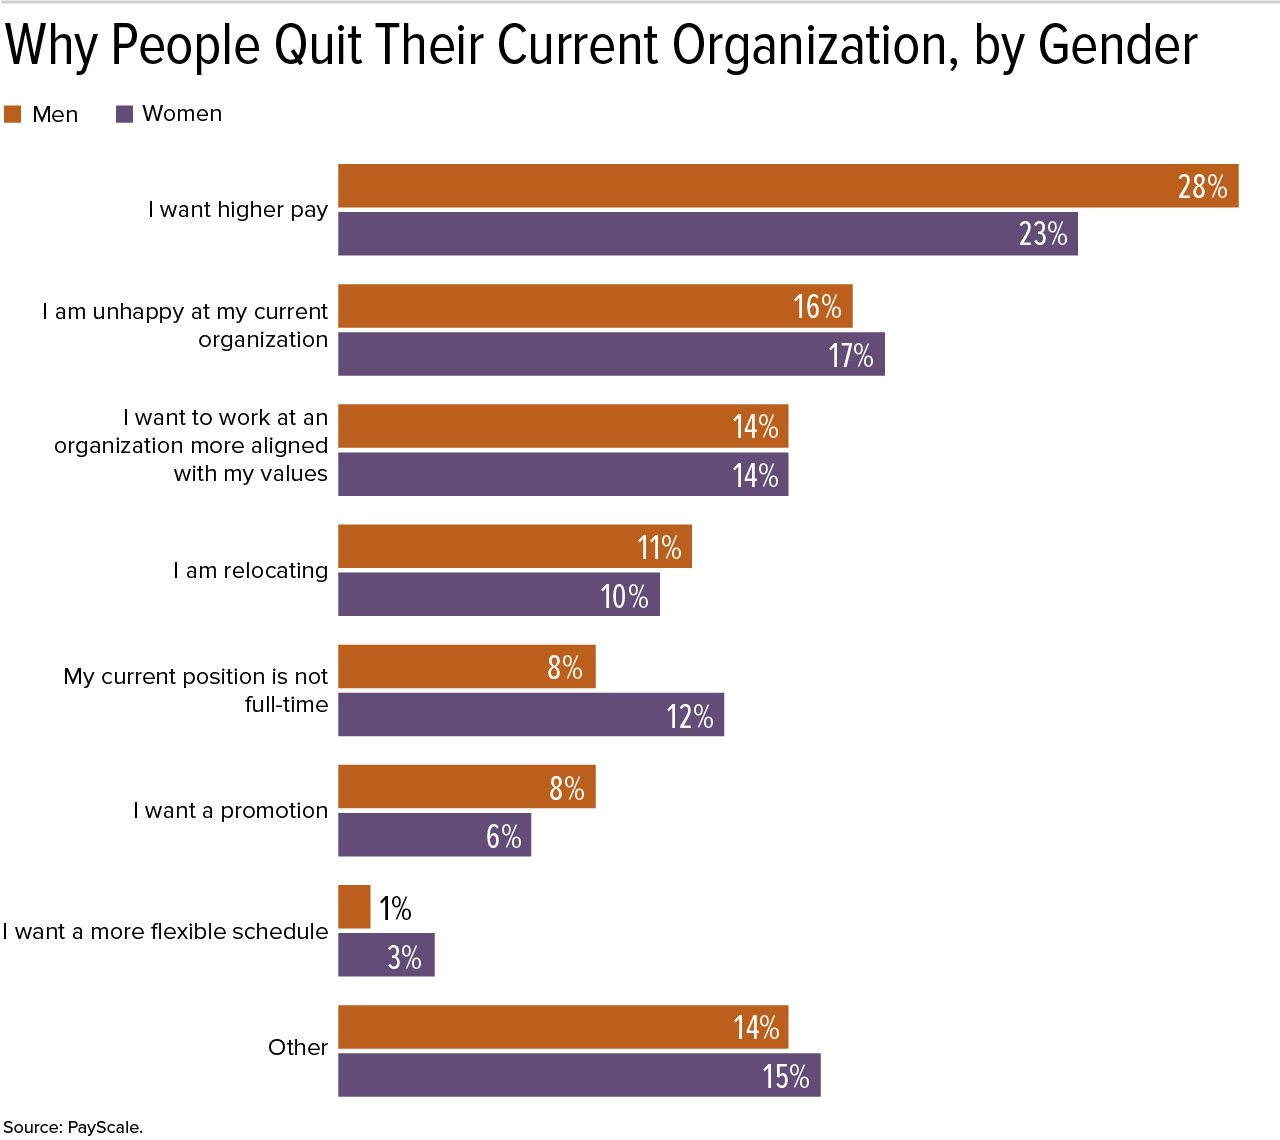 Why People Quit Their Current Organization, by Gender